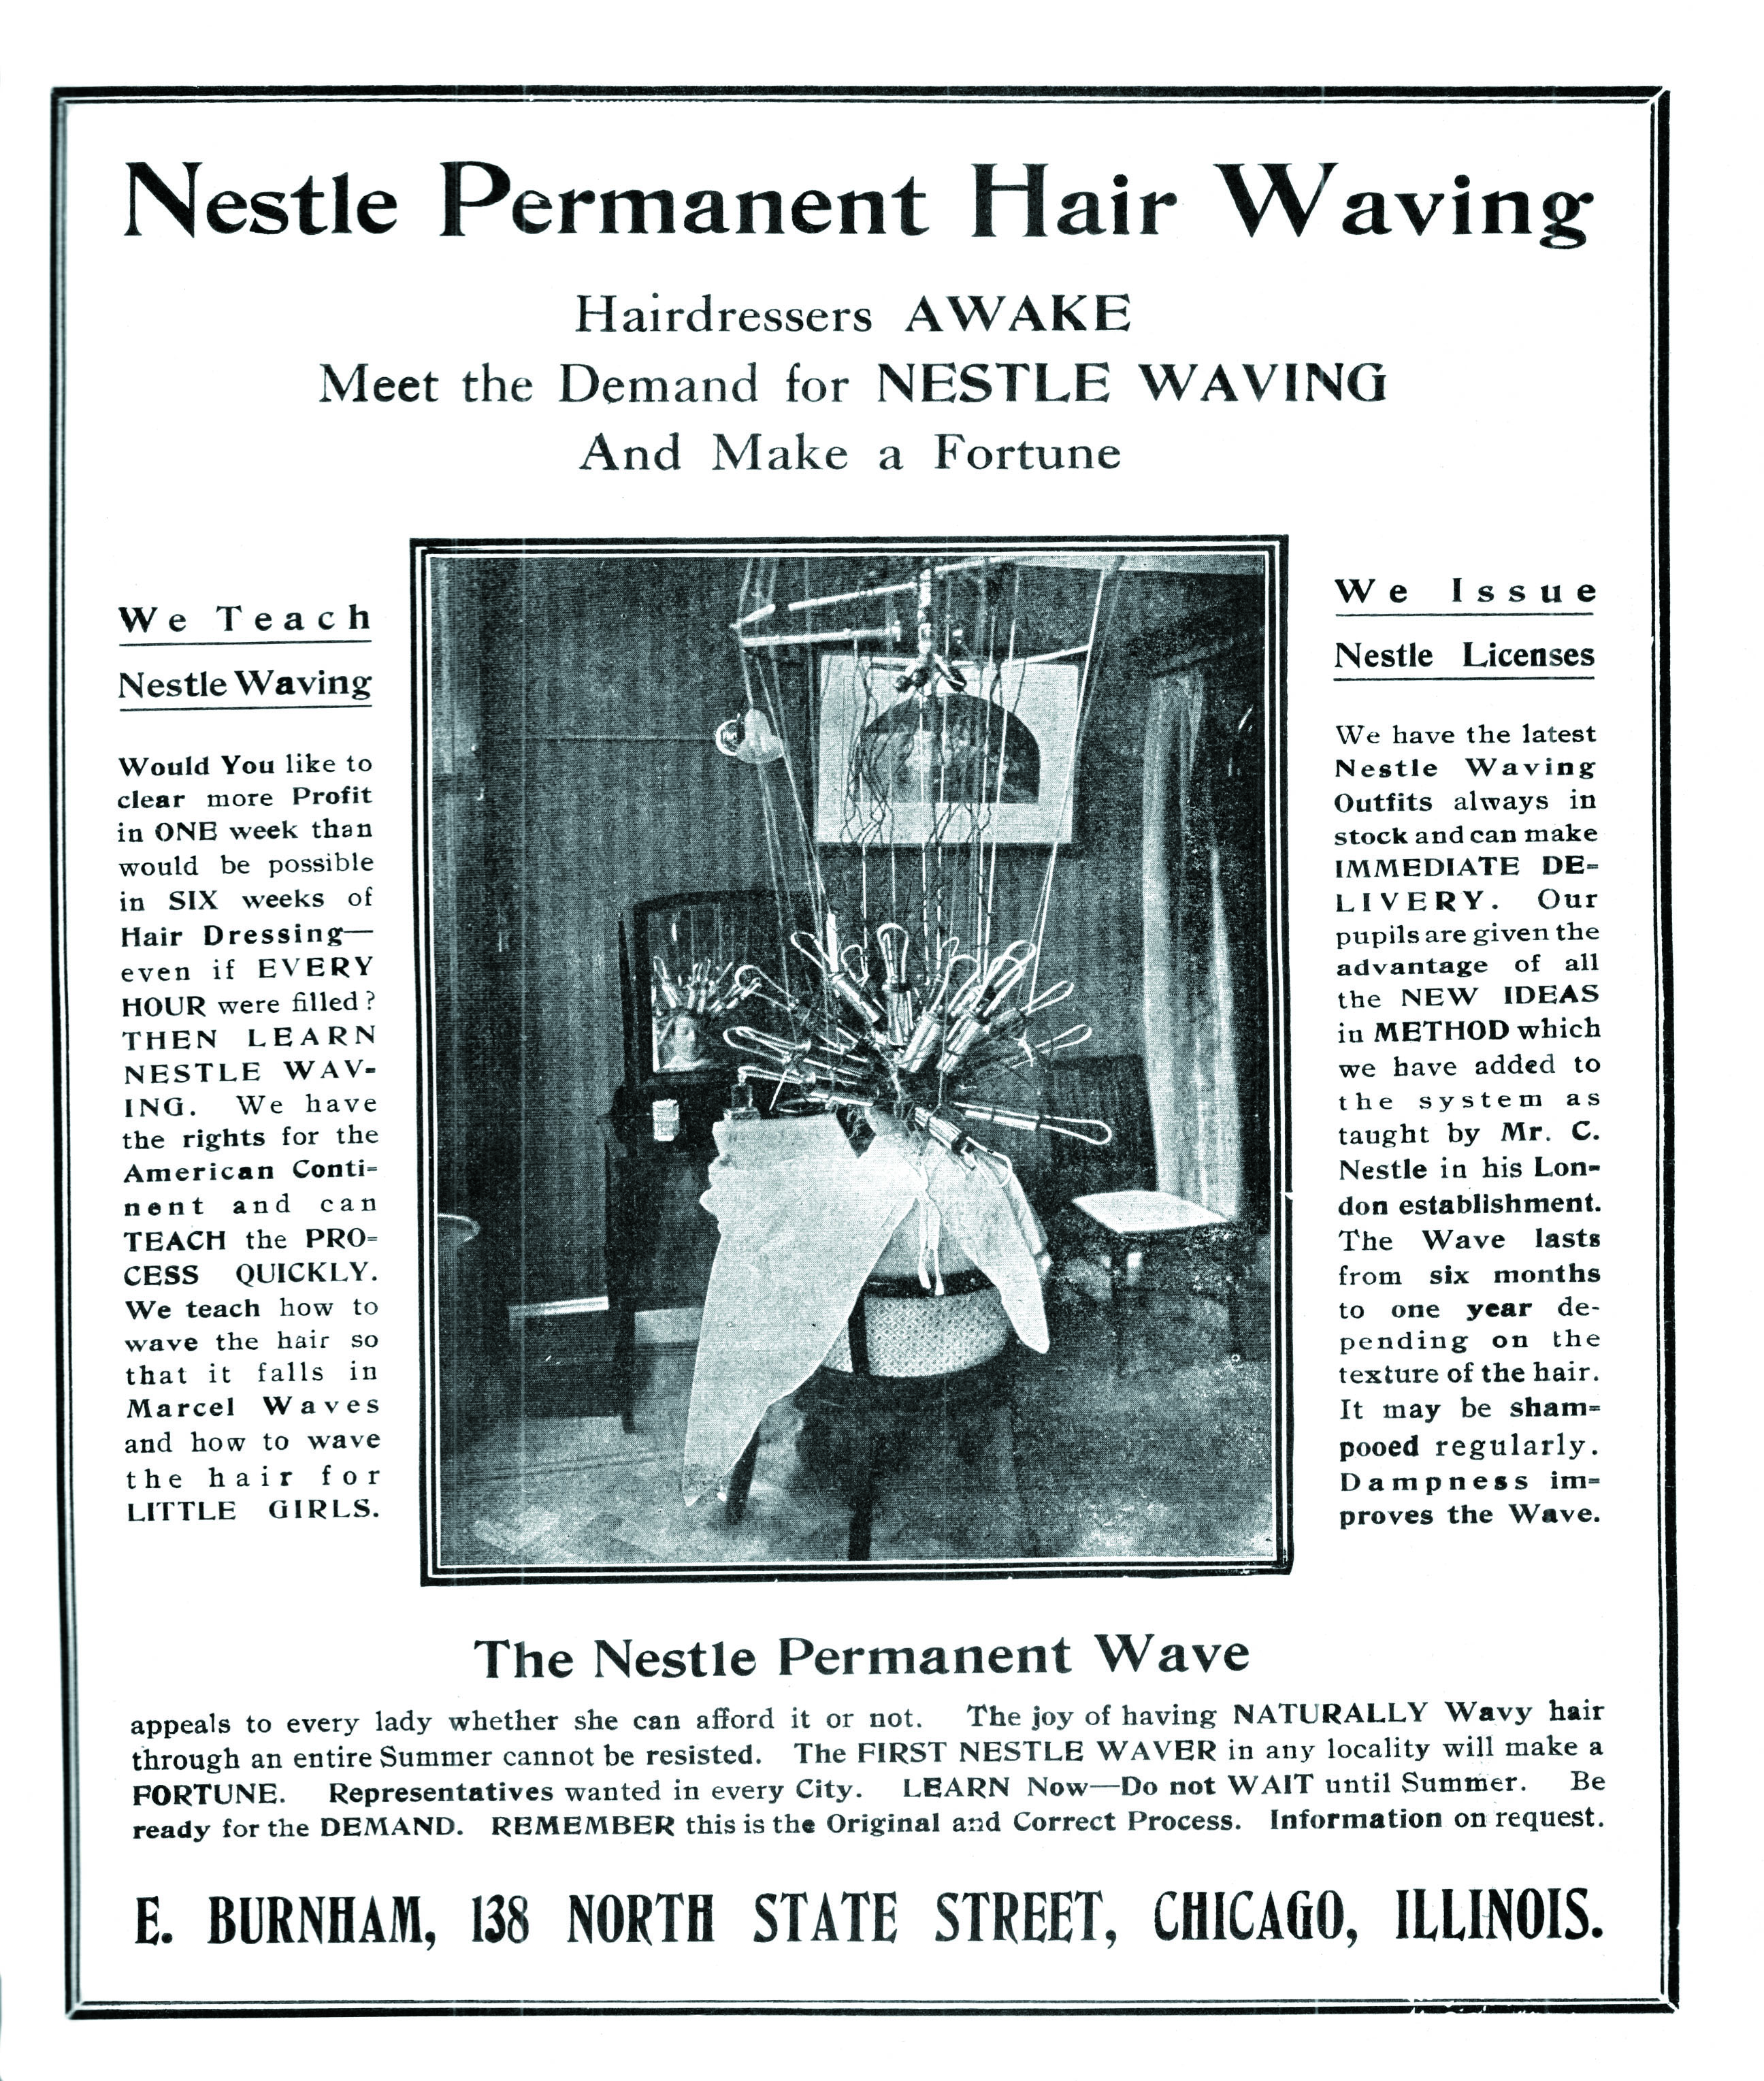 An ad for Nestle permanent waving.